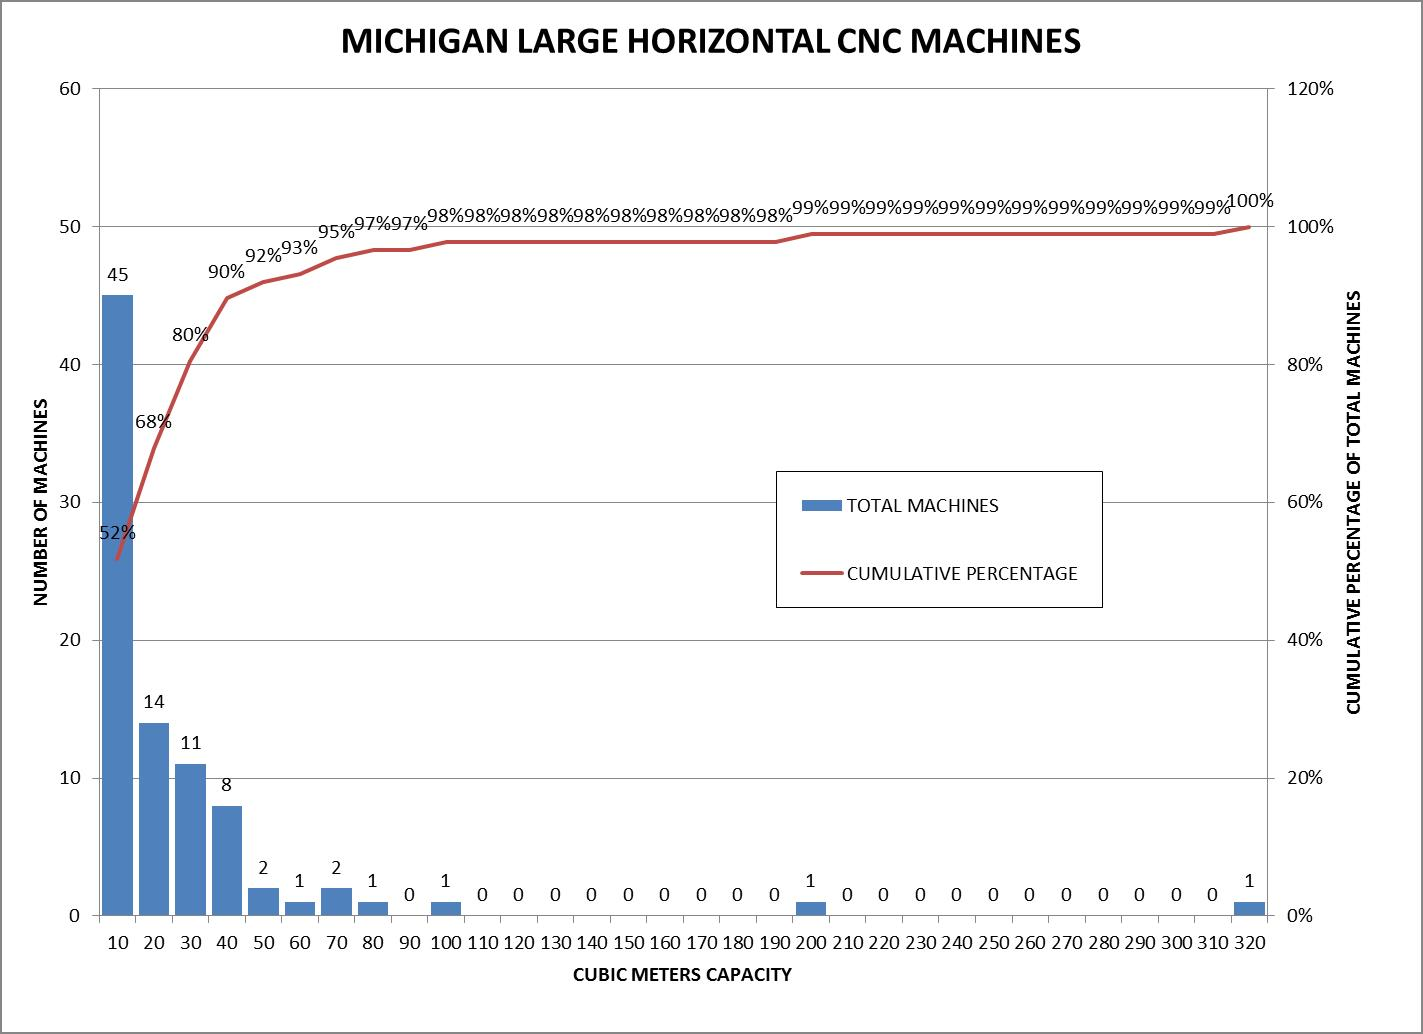 Michigan Large Horizontal CNC Machines Histogram